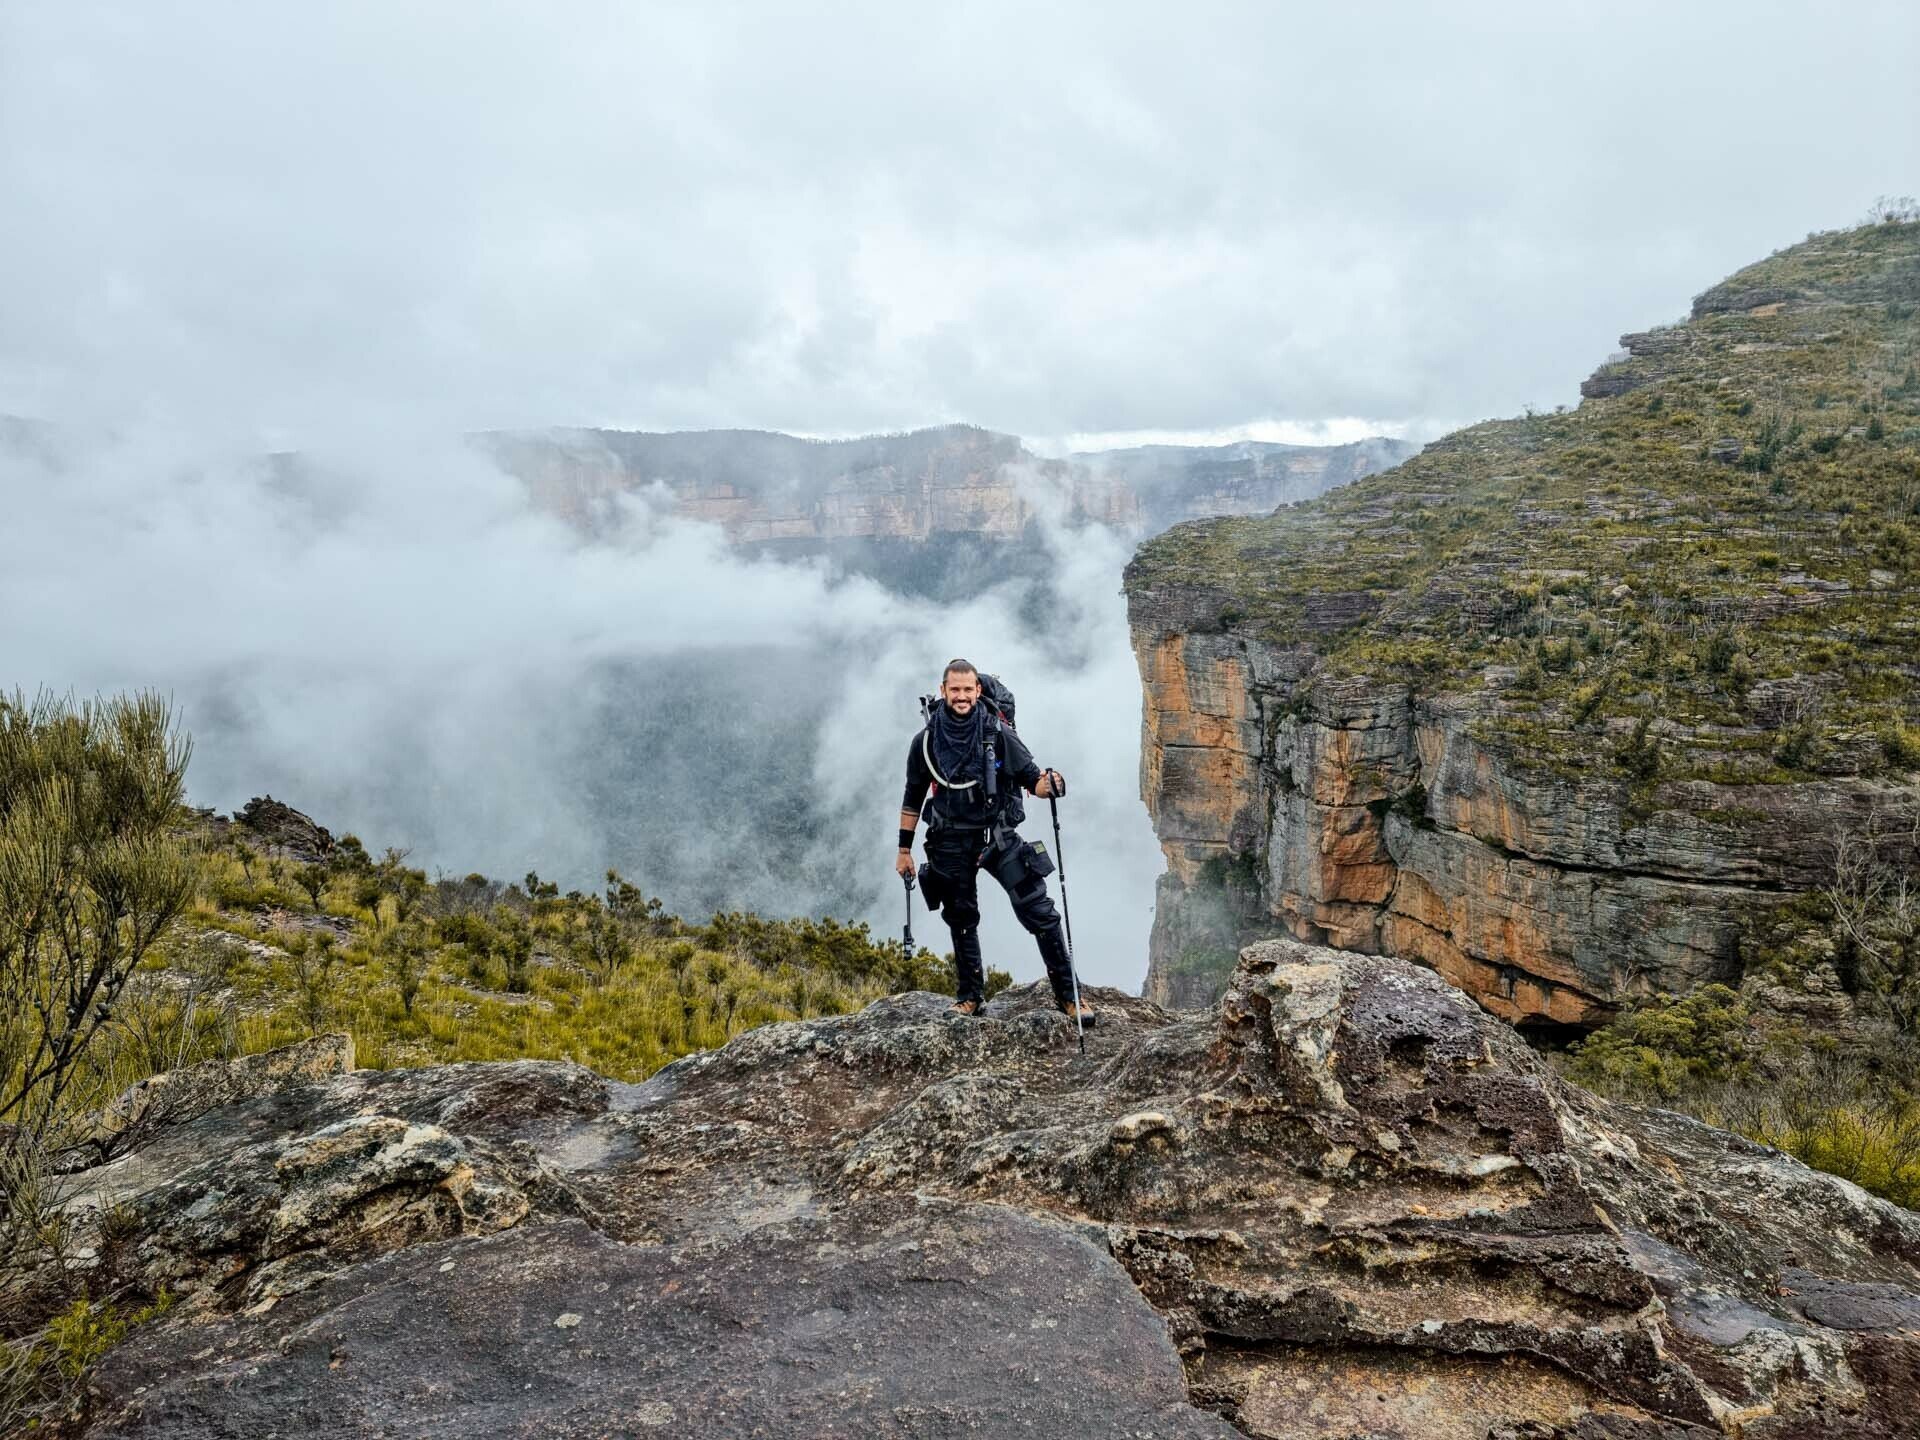 5 Things I Learnt Preparing for a 600km Hike, jason reeve, feature image, blue mountains